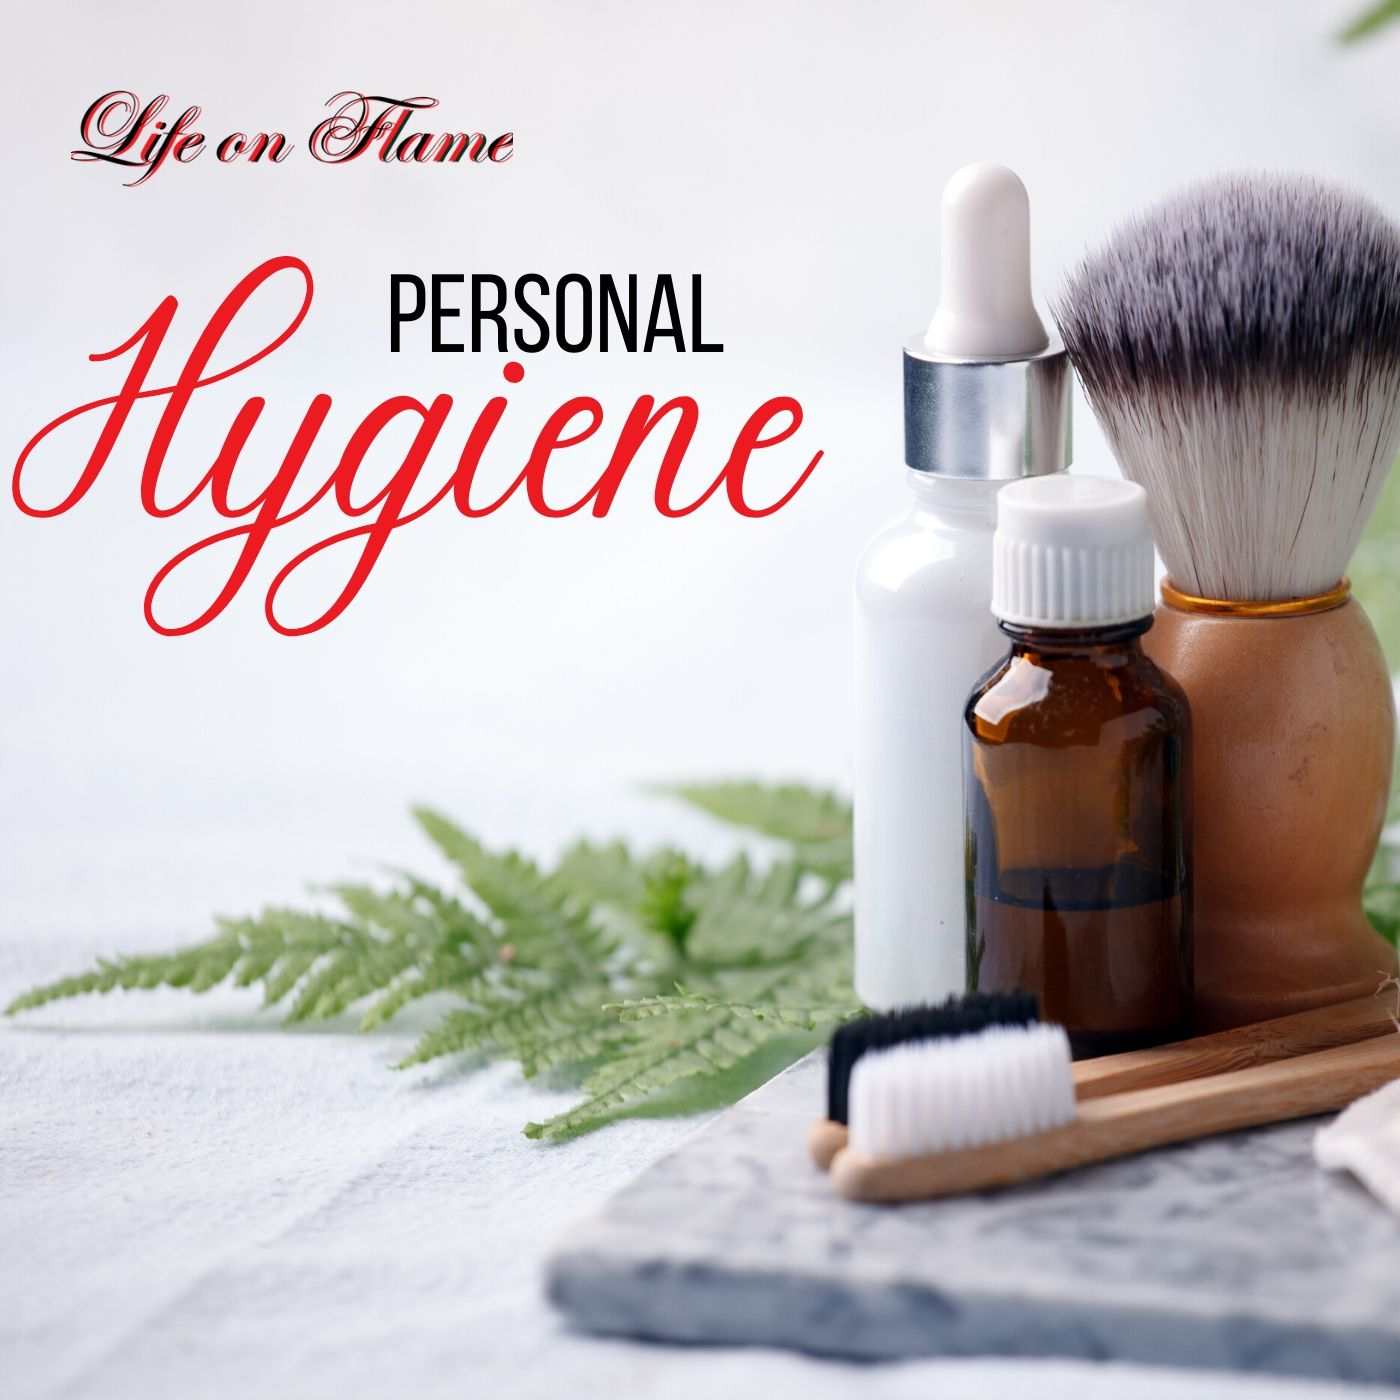 Personal Hygiene Secrets - Life on Flame - pleasure in life Best way to have a clean sex and avoid AIDS is to have a clean personal hygiene both for your marriage sex and life